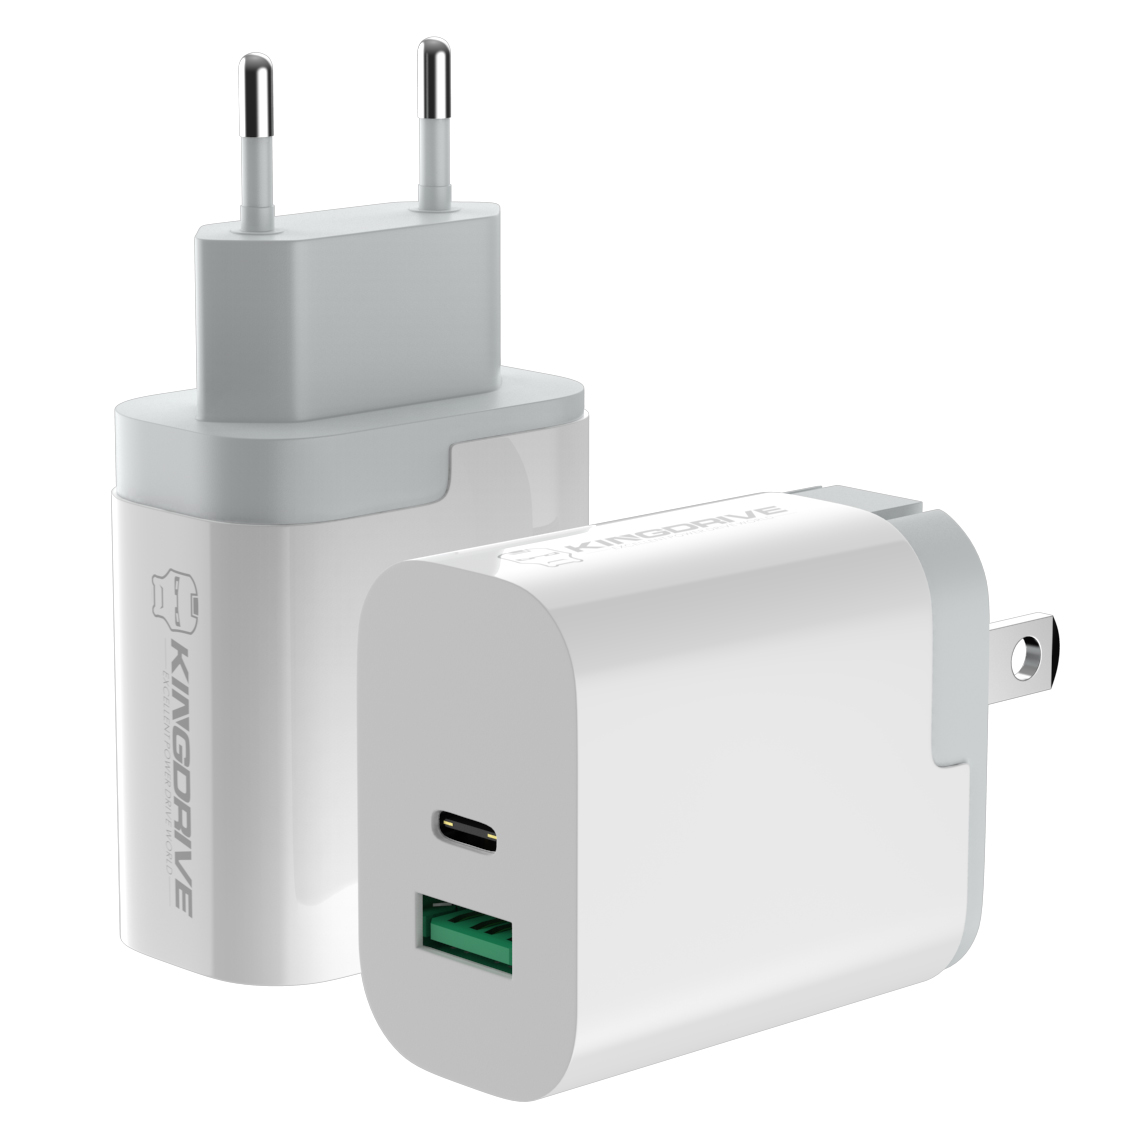 New products Australian plug Qualcomm quick wall charger QC 3.0 5v 3A simple port usb travel charger